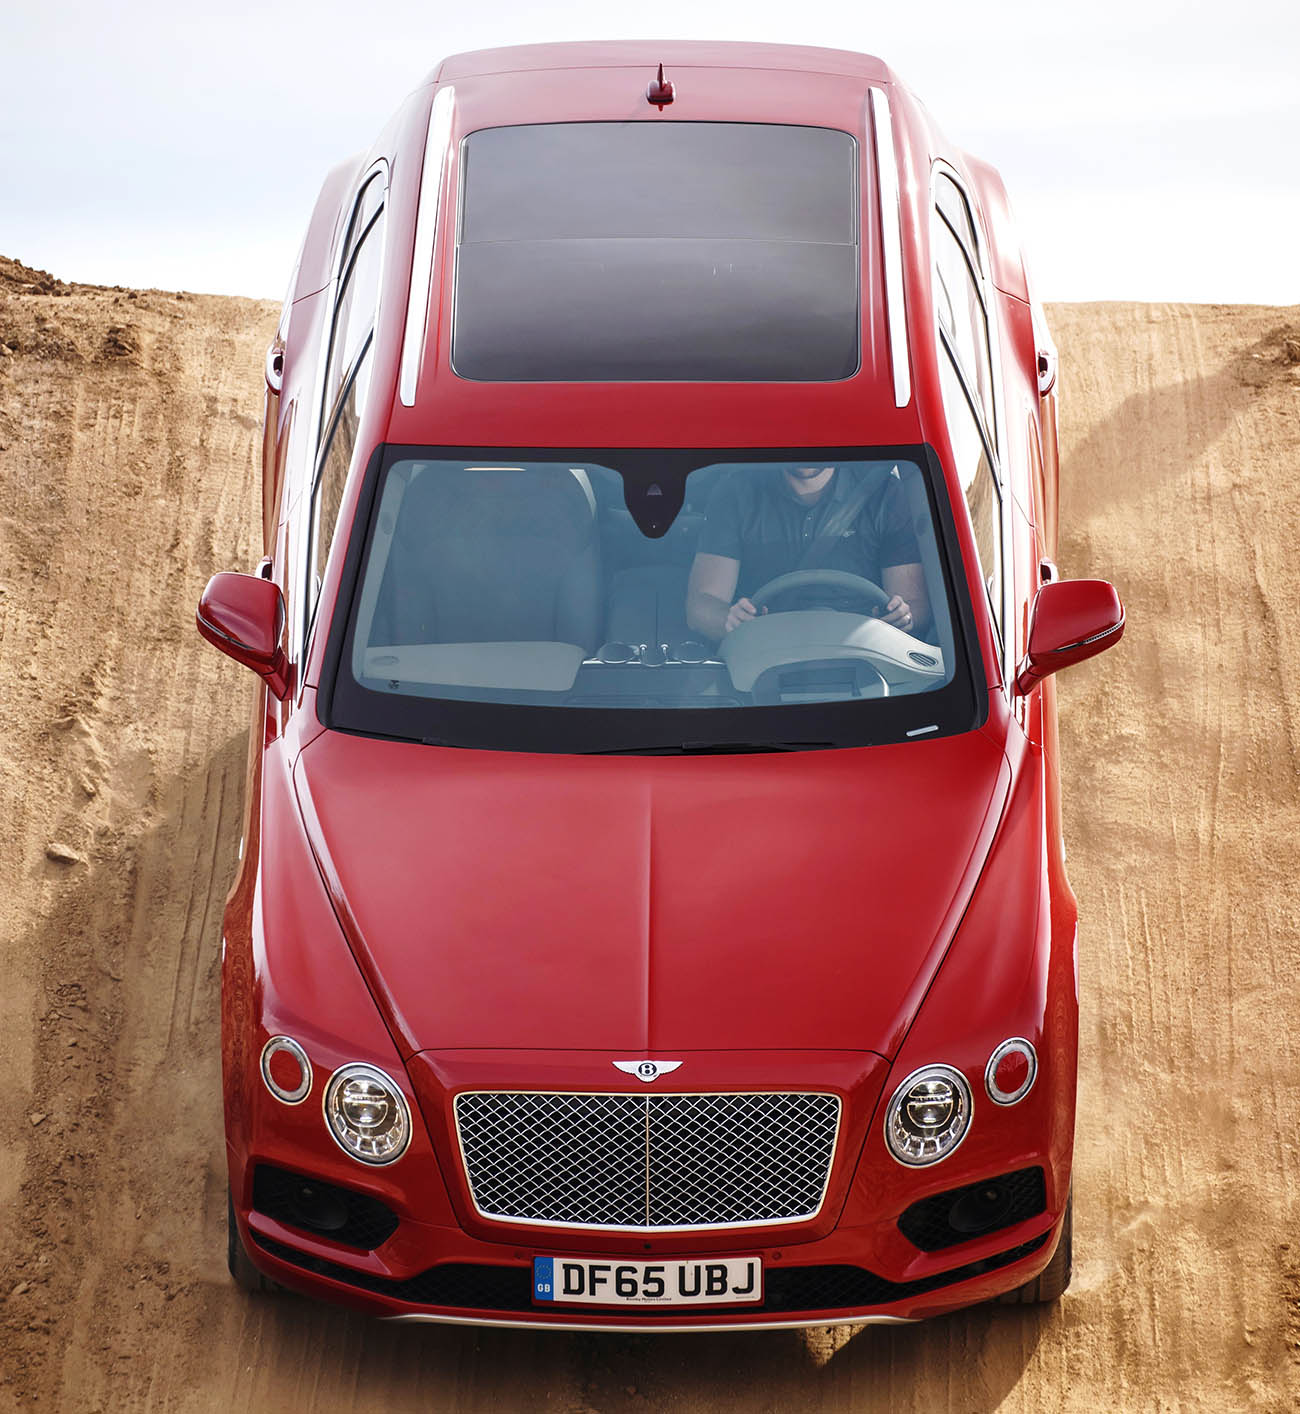 Bentley Bentayga named 'SUV of the Year' in Robb Report Best of the Bes2t Awards